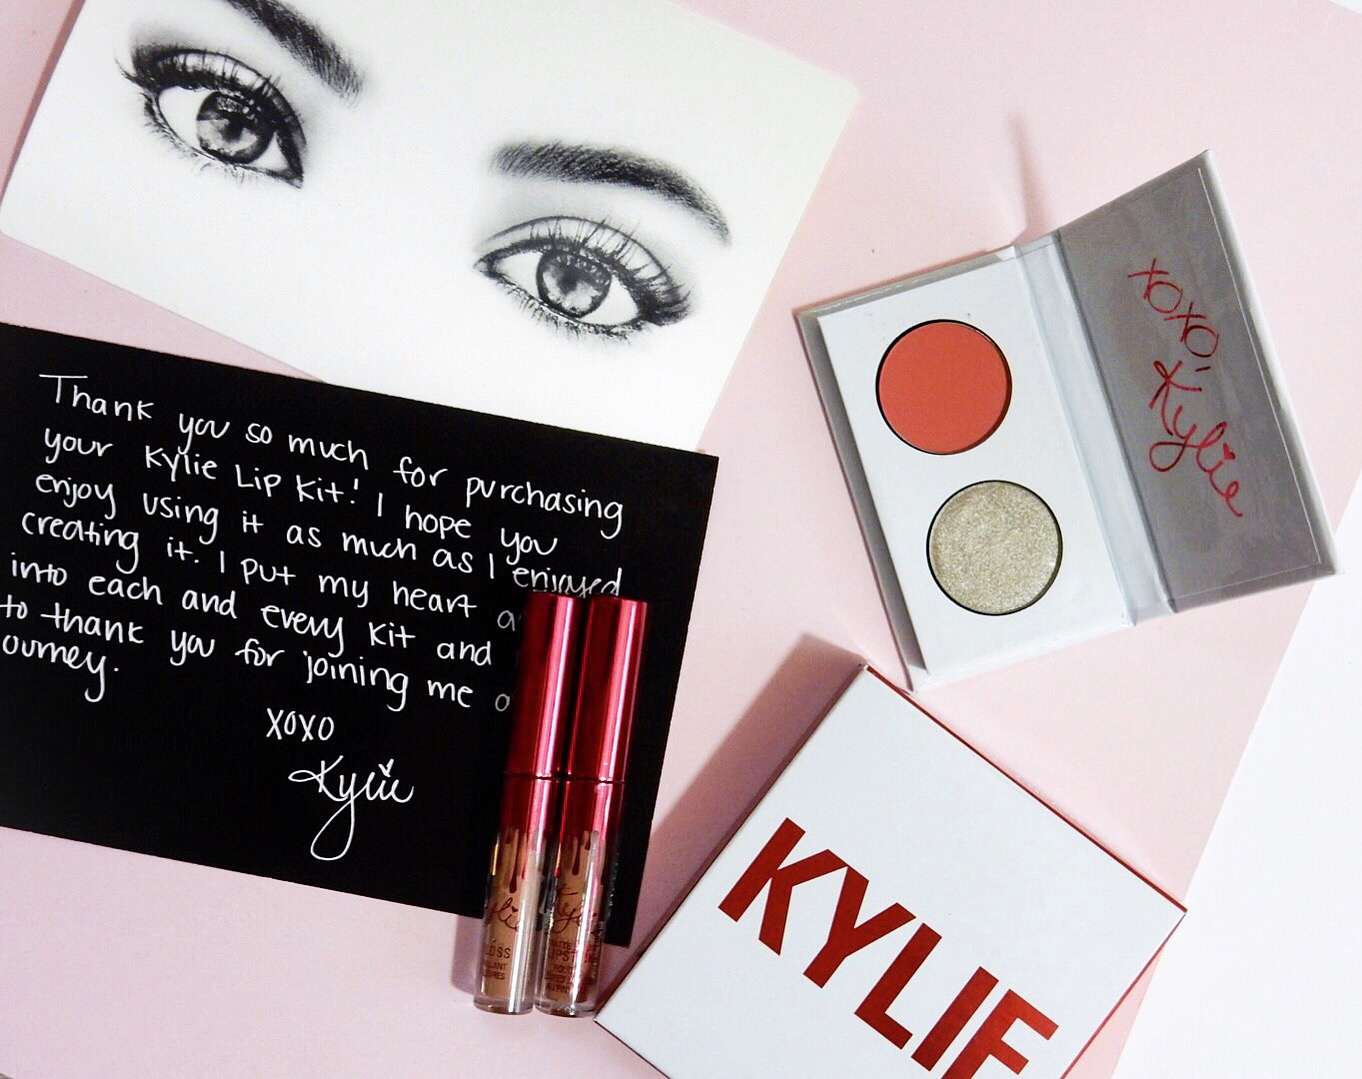 THE KYLIE JENNER VALENTINES SWEETHEART REVIEW